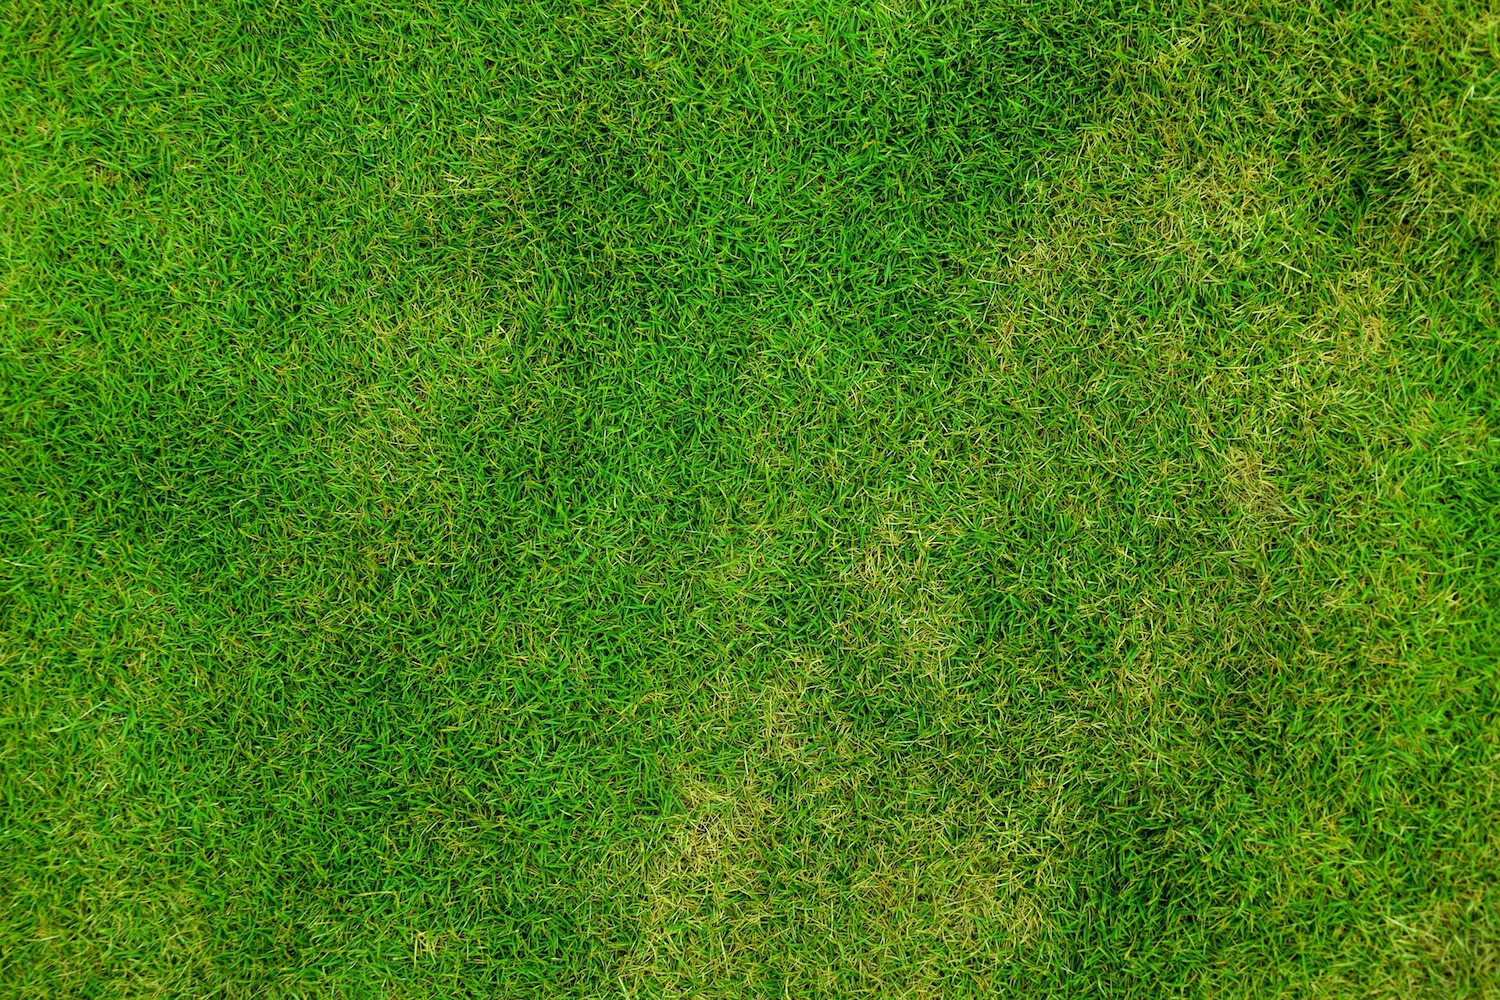 Chlorpyrifos Use Changes Amp Merit 174 Turf Withdrawal Gcma